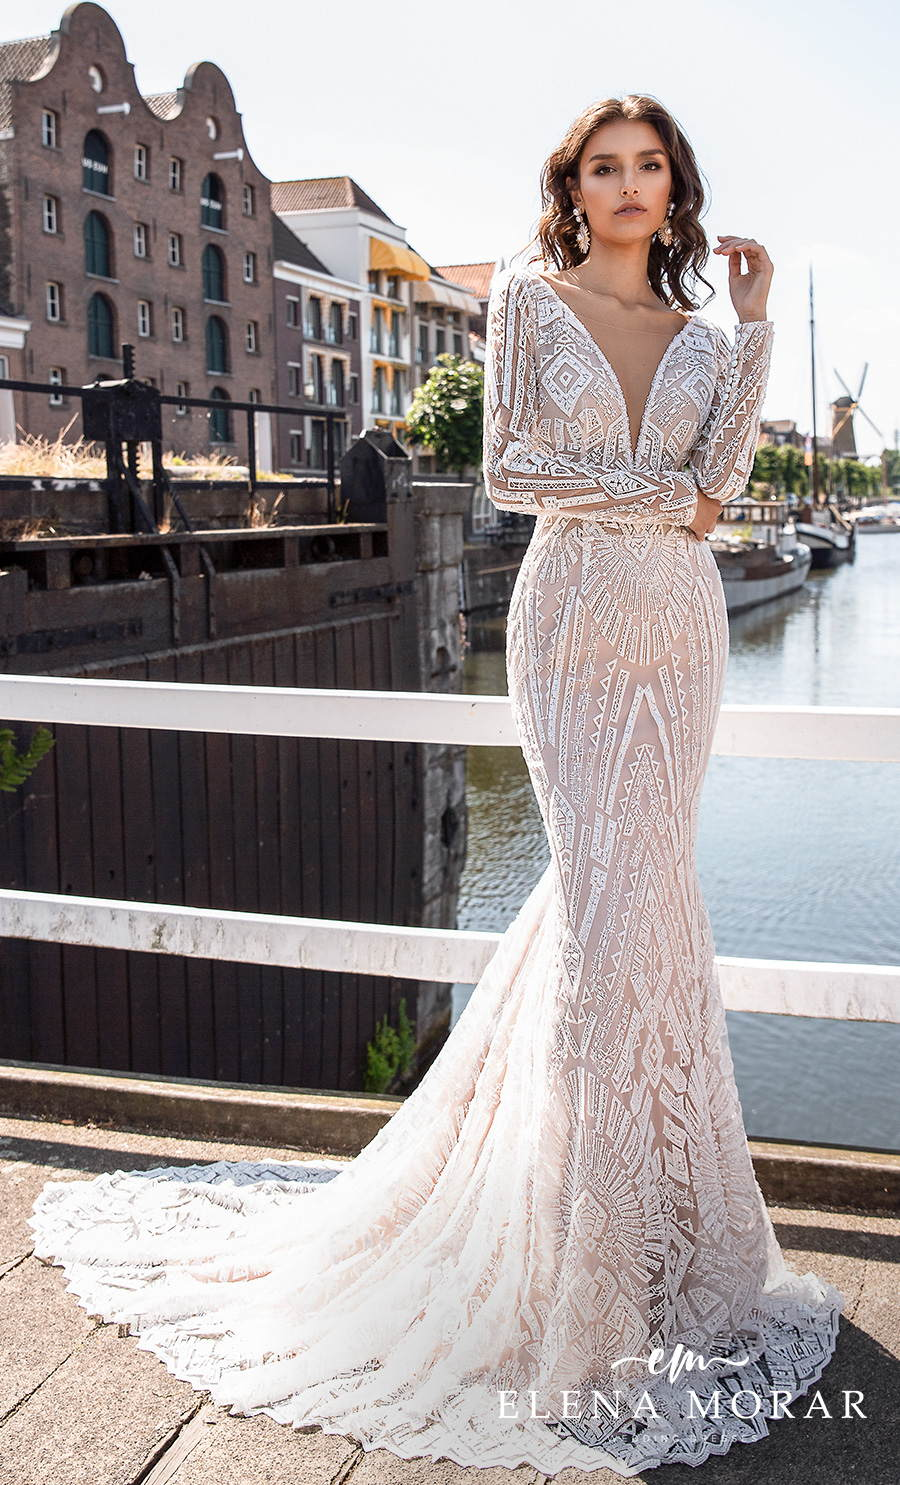 elena morar 2021 rotterdam bridal long sleeves deep plunging v neck full embellishment elegant glamorous fit and flare wedding dress v back medium train (rm005) mv